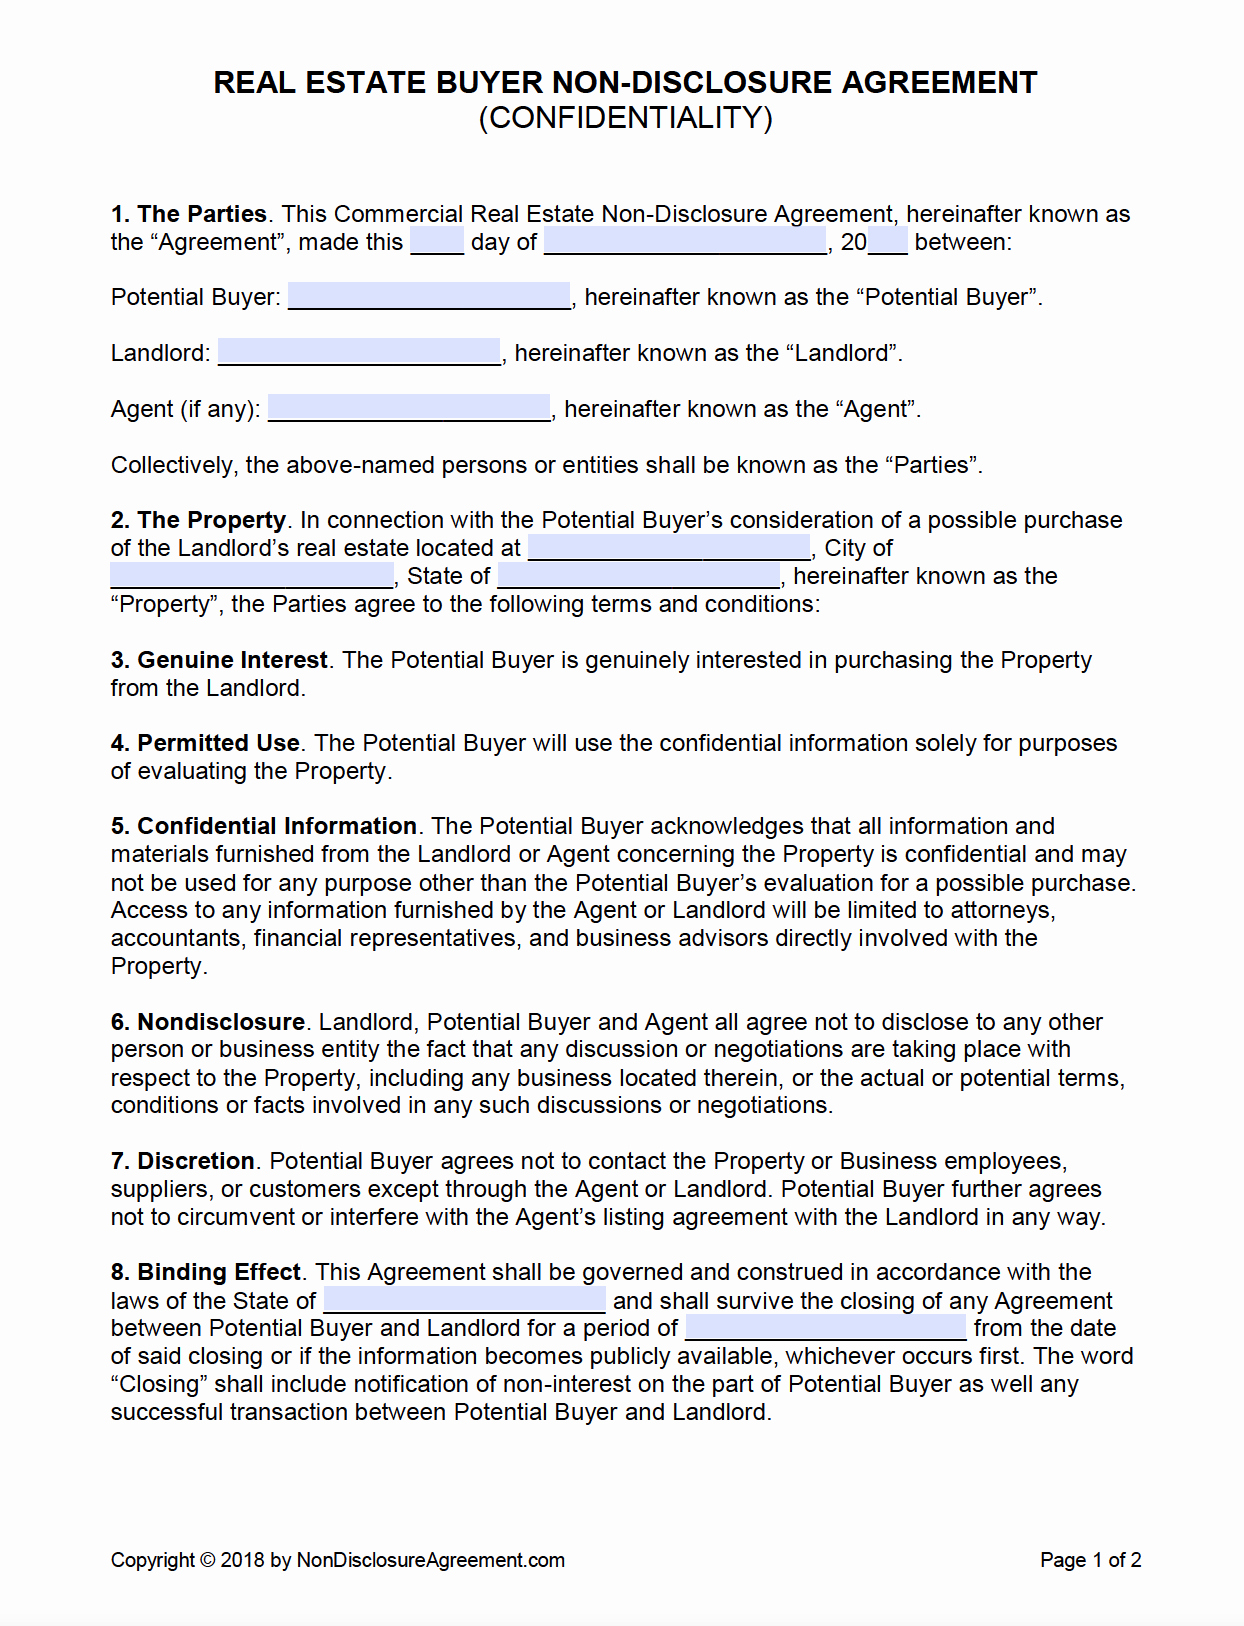 Real Estate Confidentiality Agreement Beautiful Free Real Estate Buyer Confidentiality Non Disclosure Agreement Pdf